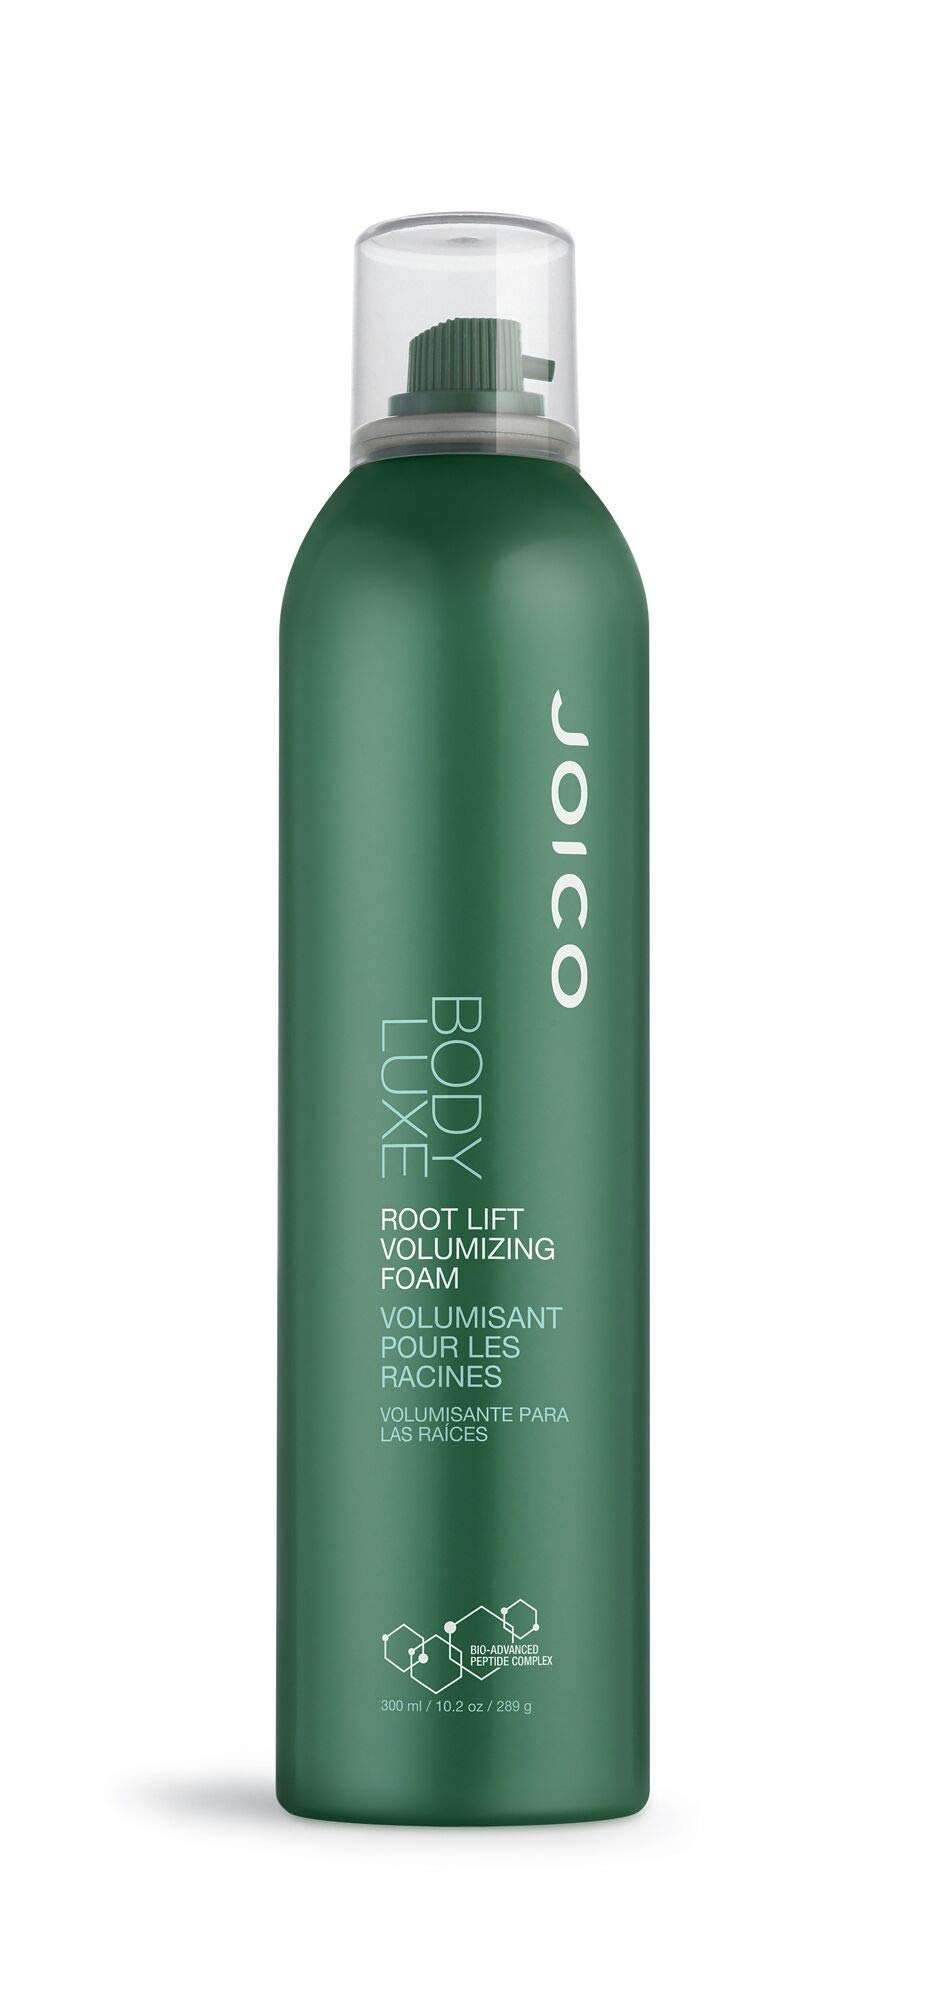 Joico Body Luxe Root Lift Volumizing Foam, 10.2-Ounce by Joico